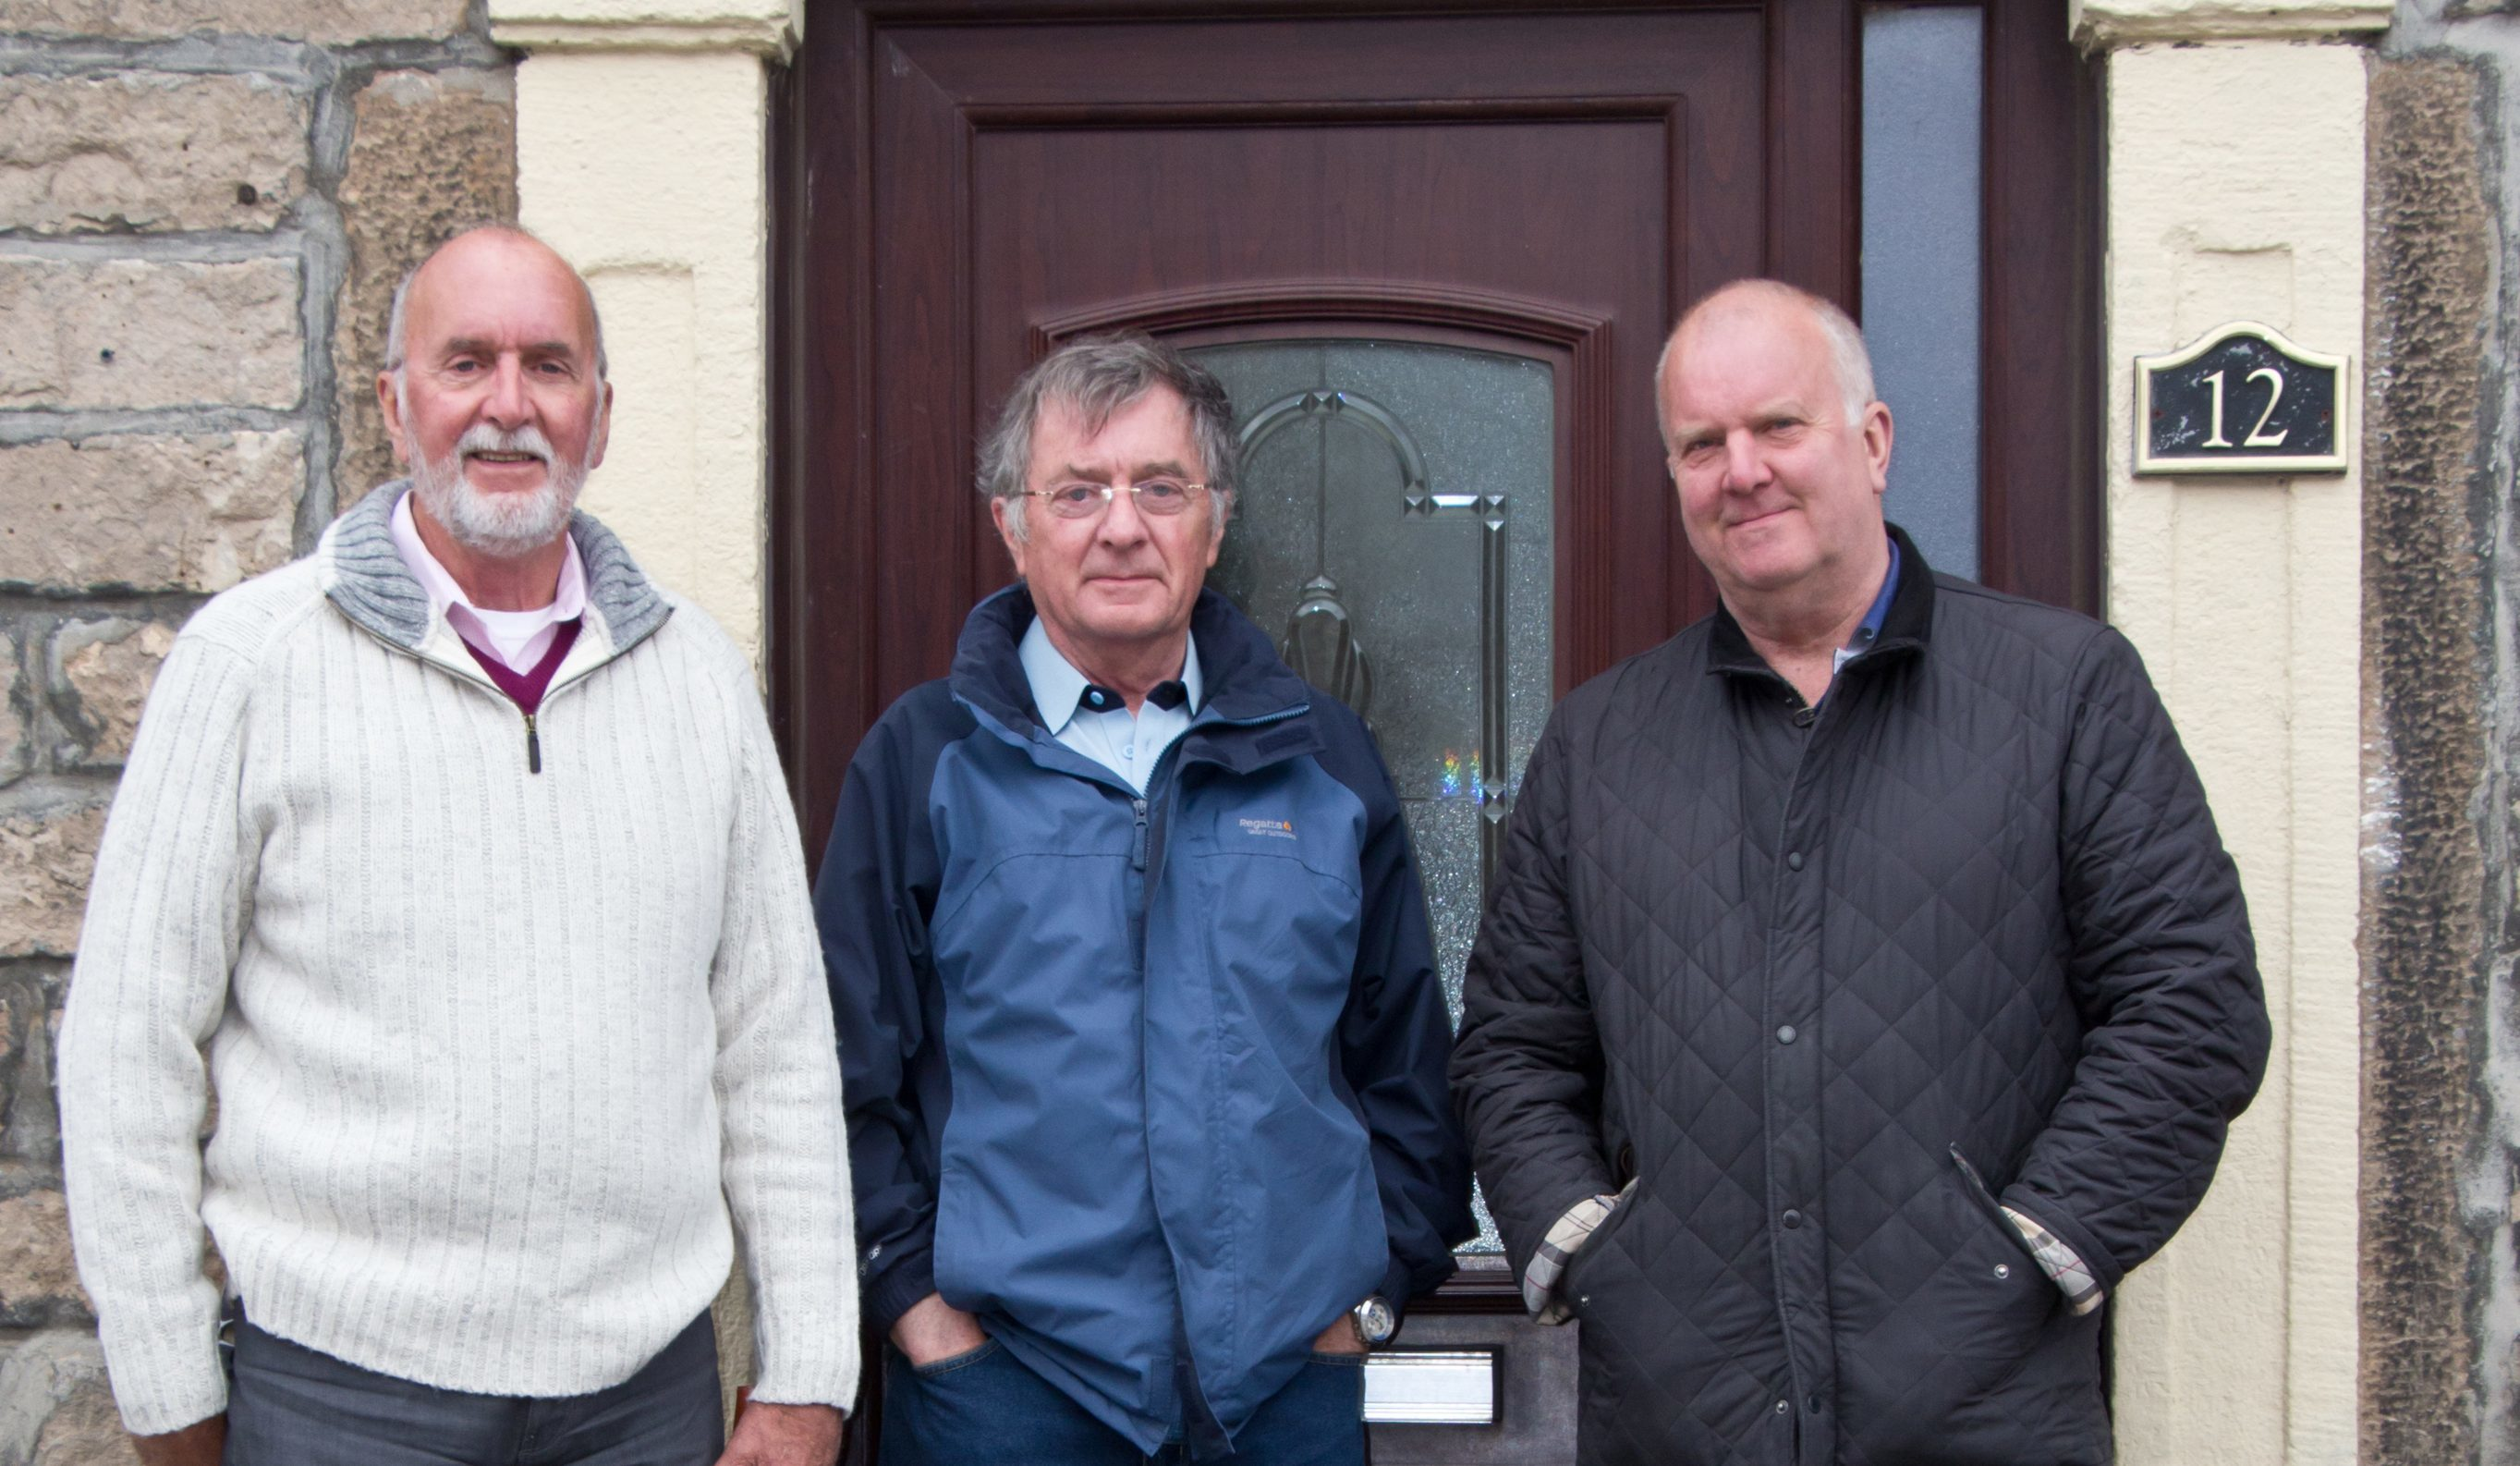 From left, brothers John Bowie, Colin Bowie and Richard Mace.